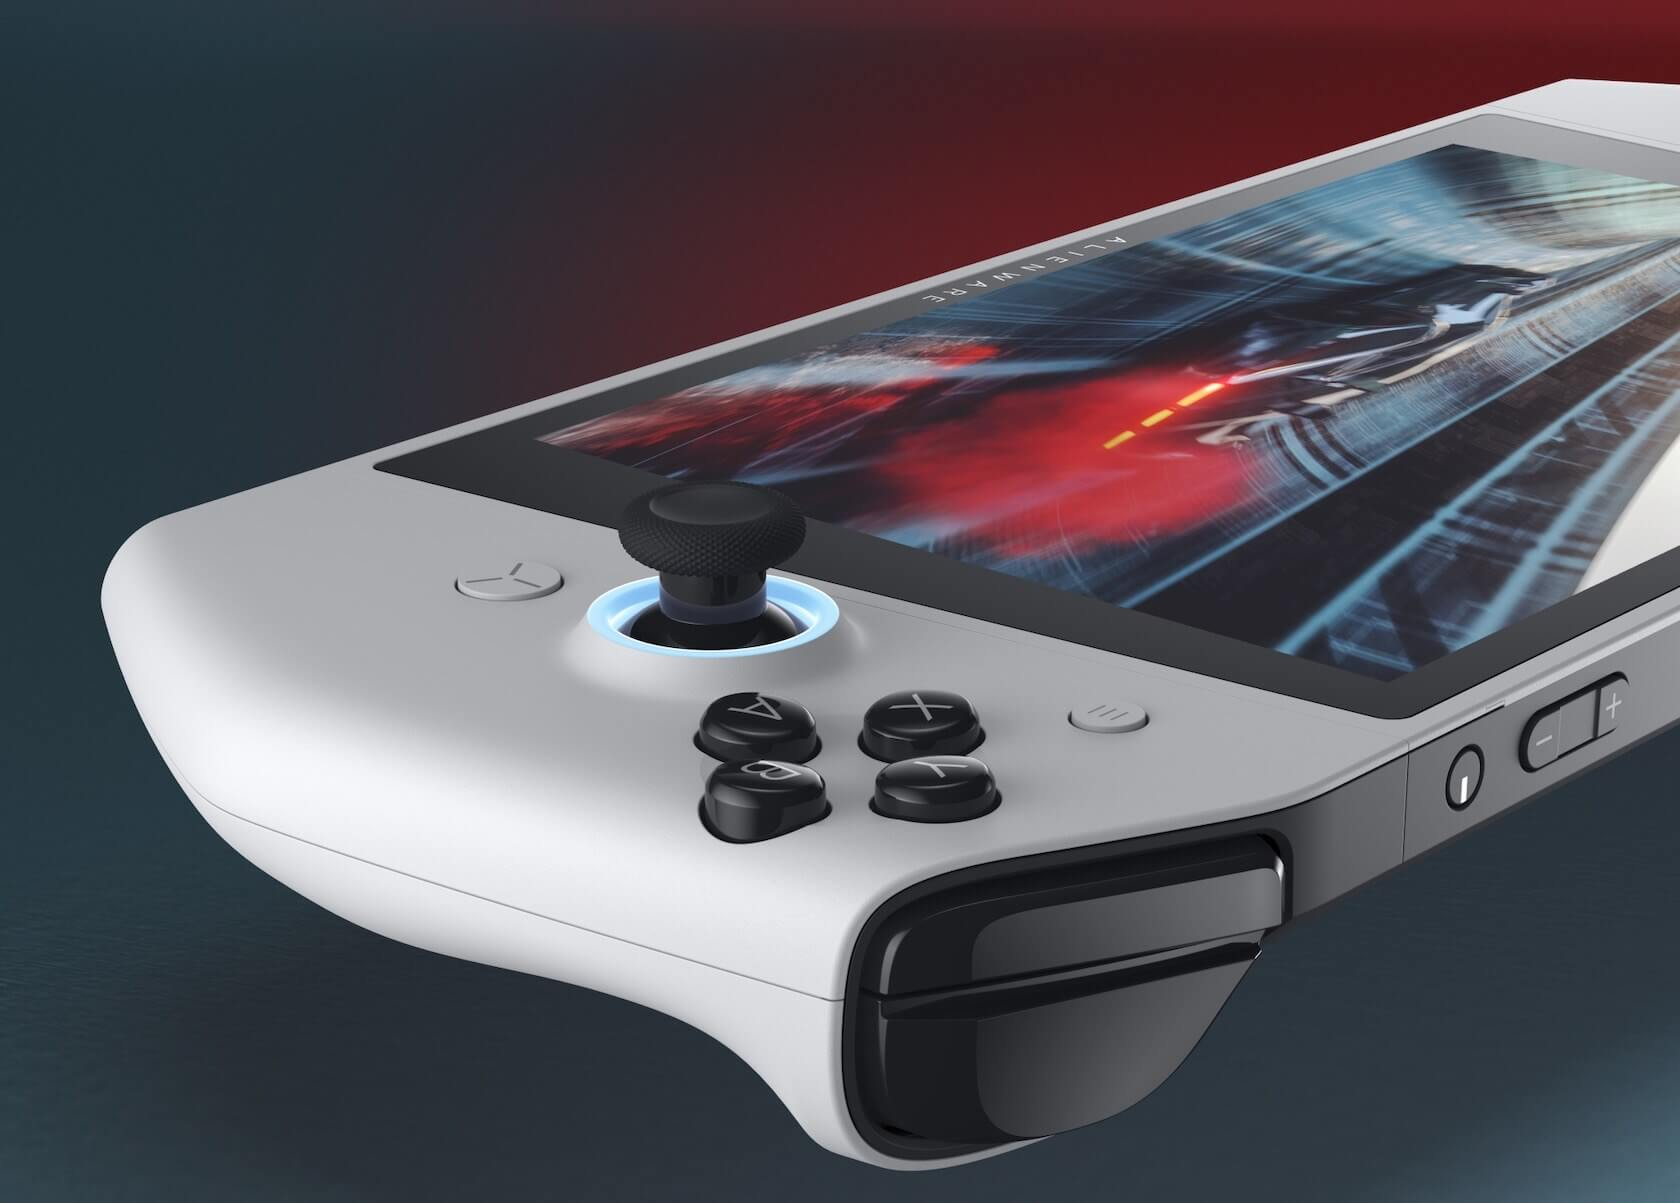 Alienware's 'Concept UFO' prototype brings Switch-like handheld gaming to PC players